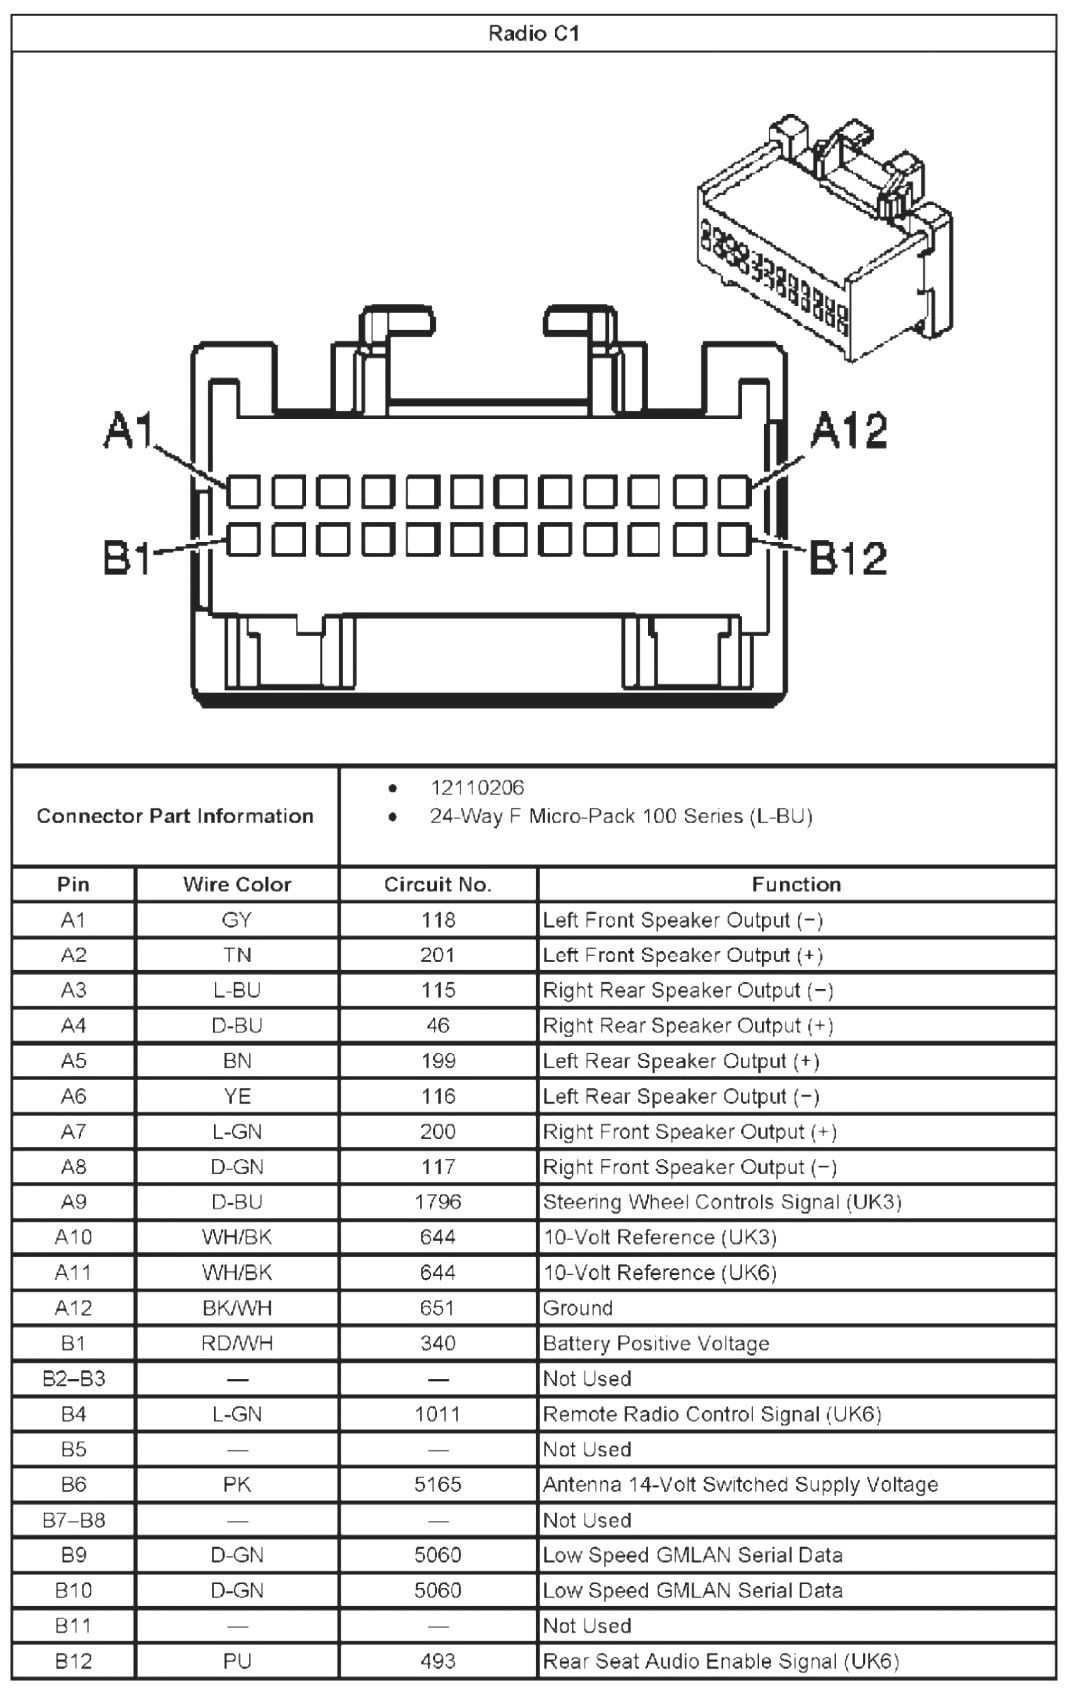 2003 Chevy Impala Radio Wiring Diagram Gallery Wiring